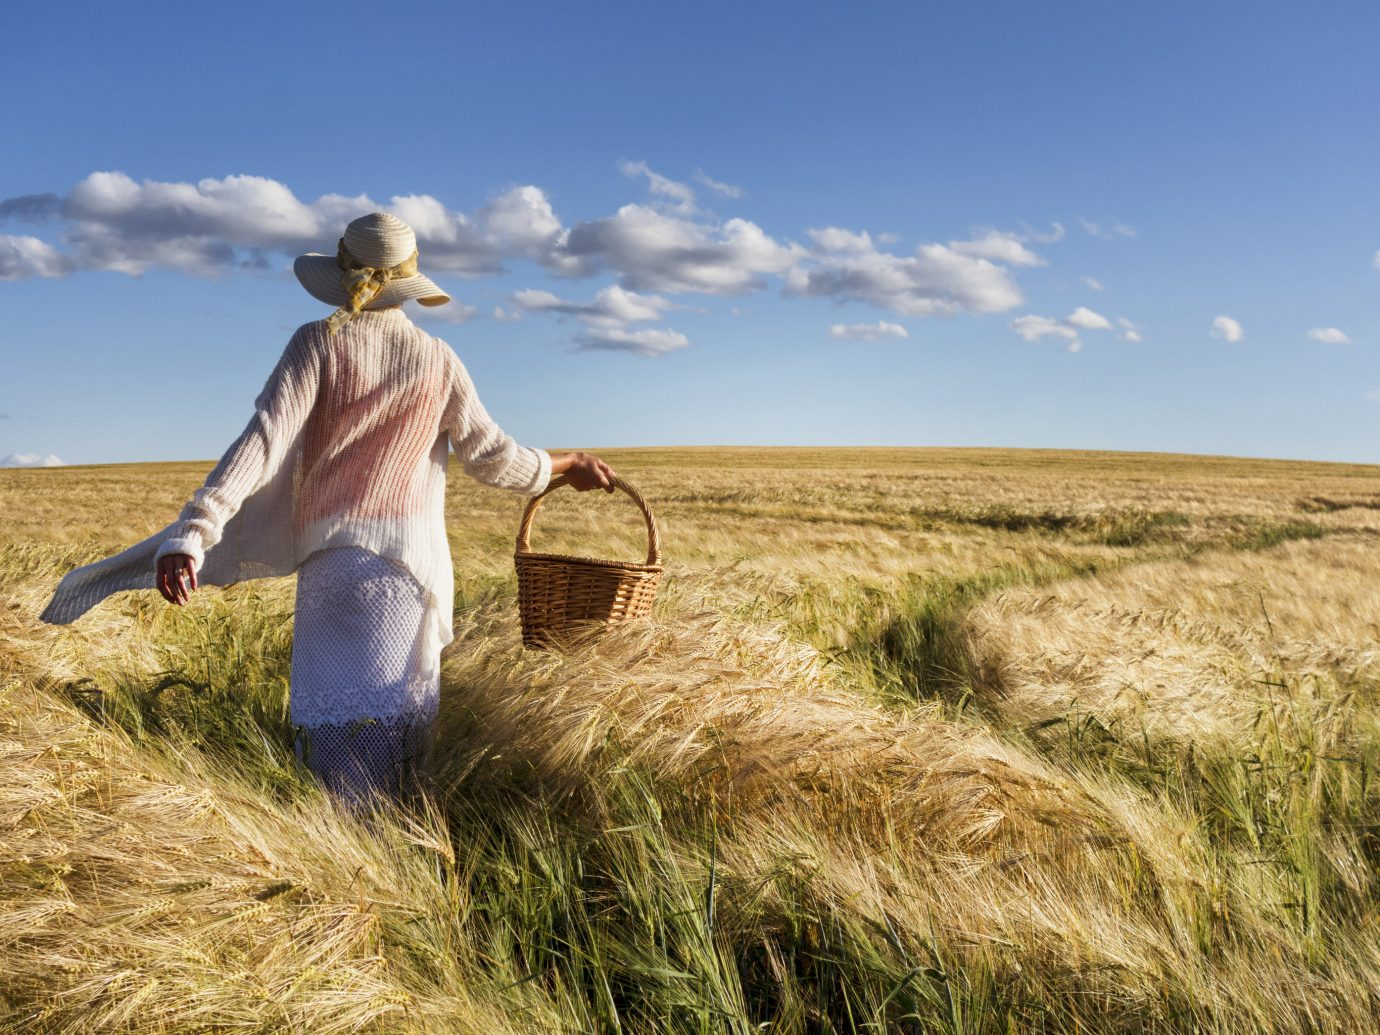 Offbeat grass sky outdoor agriculture grassland field prairie natural environment ecosystem steppe grass family horizon crop plant wheat rural area meadow landscape harvest flowering plant food grain food outdoor object highland